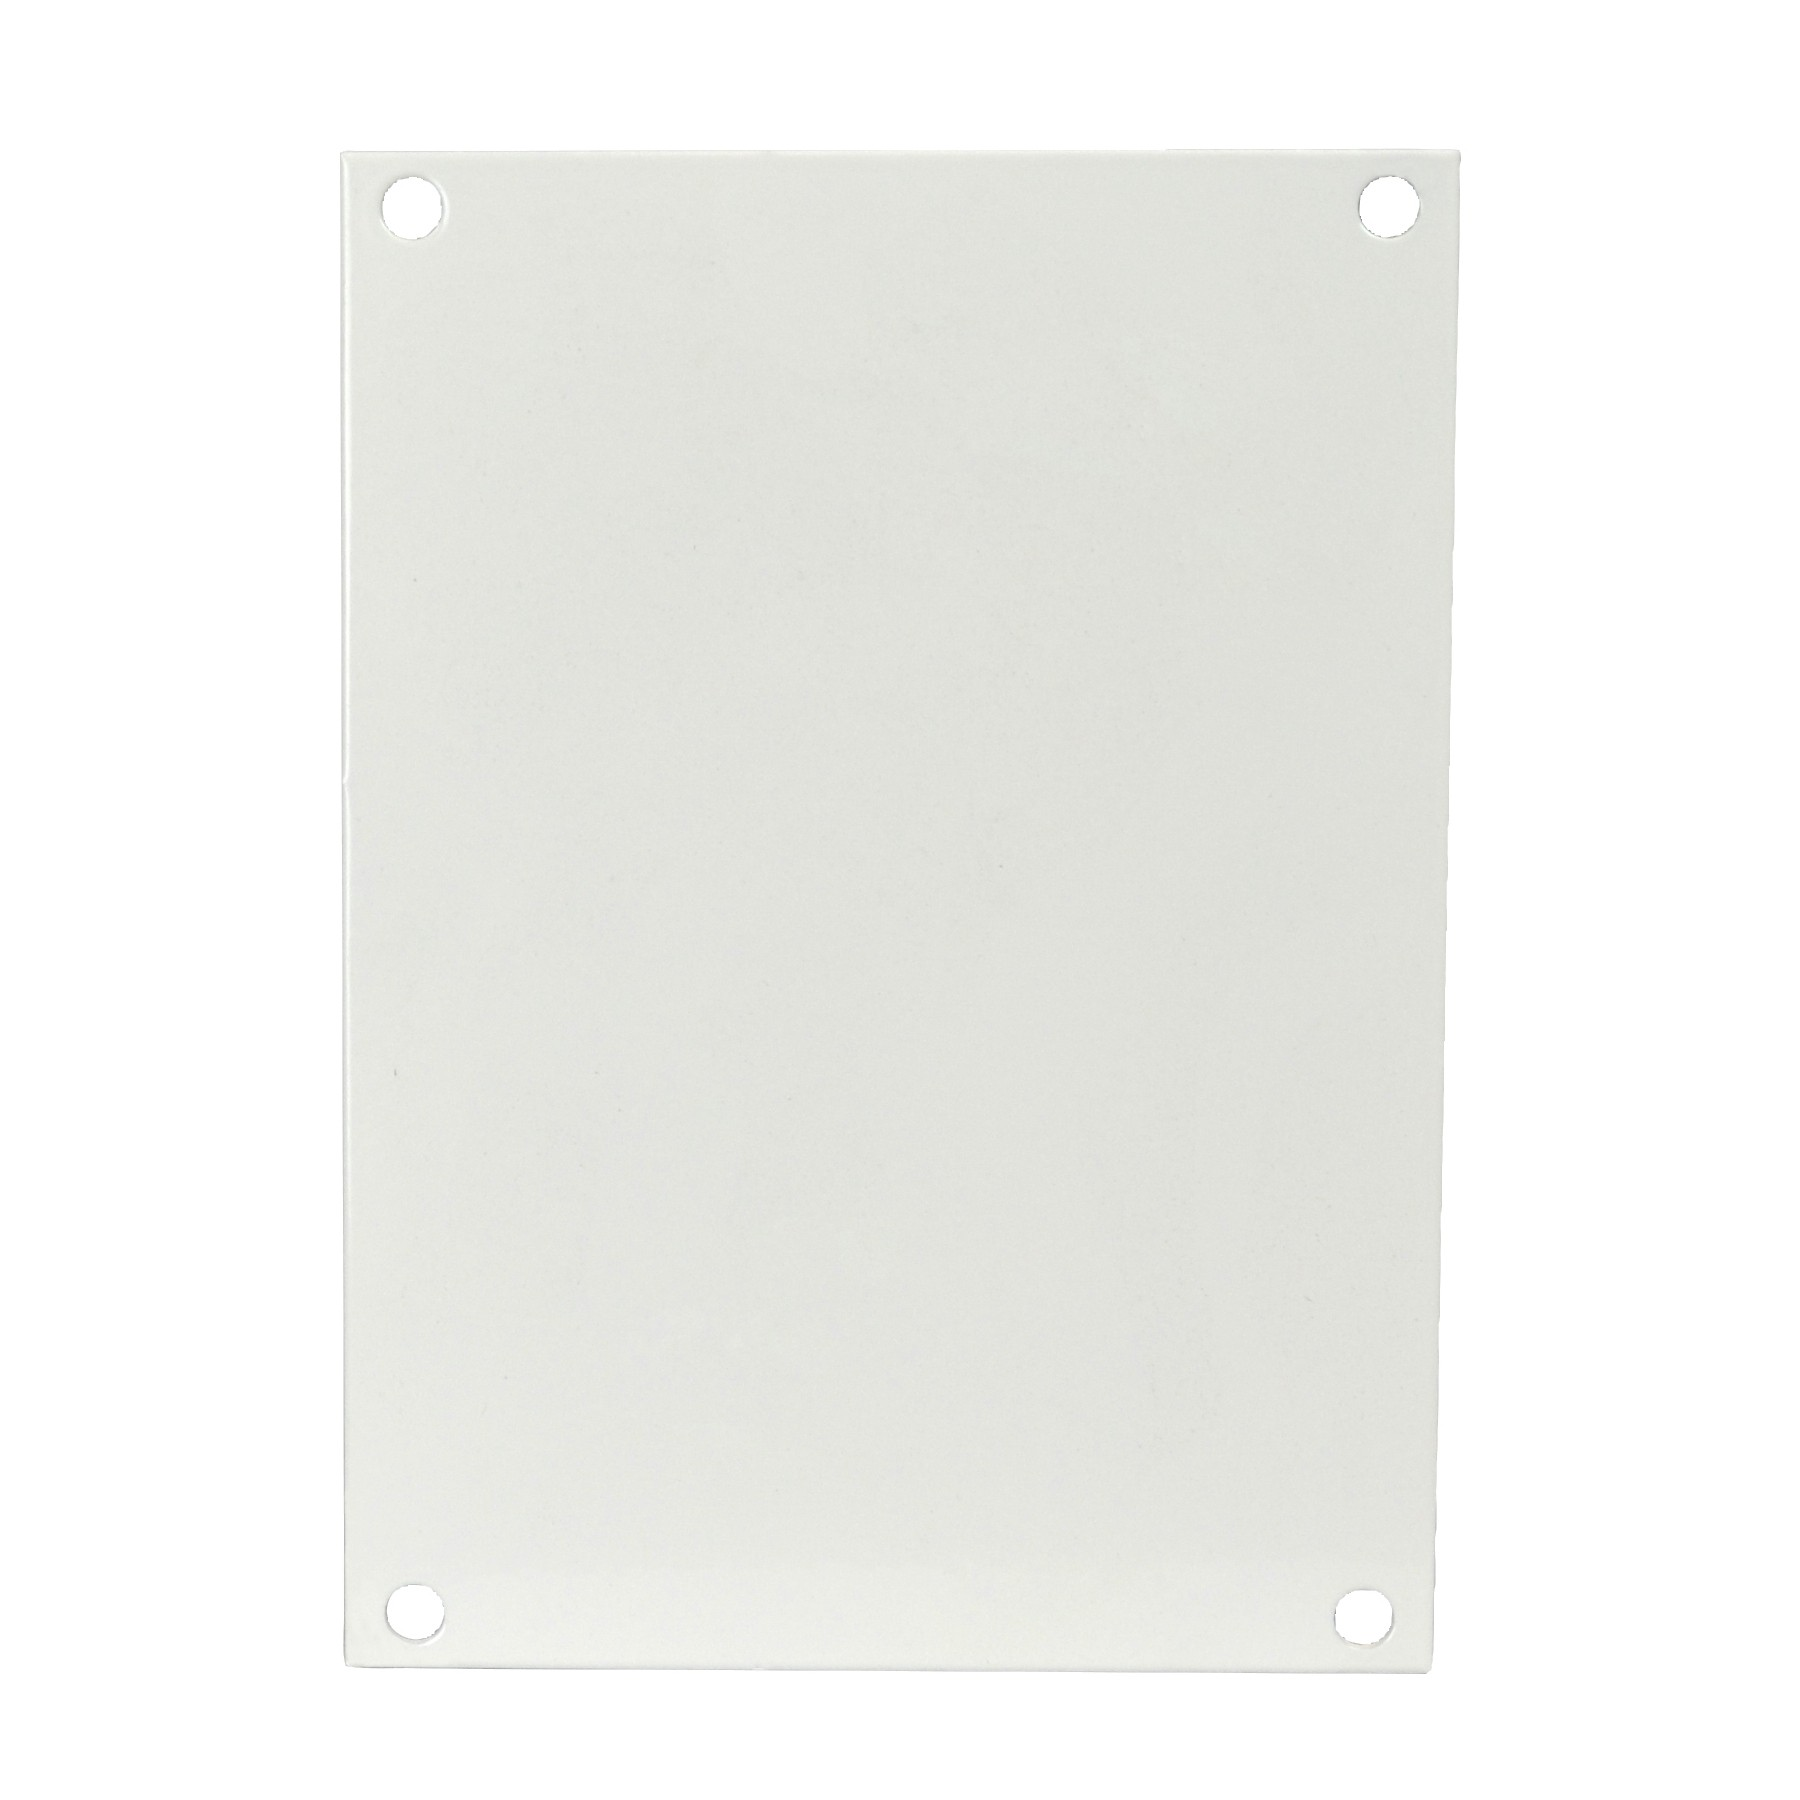 P142 - Carbon Steel Enclosure Back Panel Kit